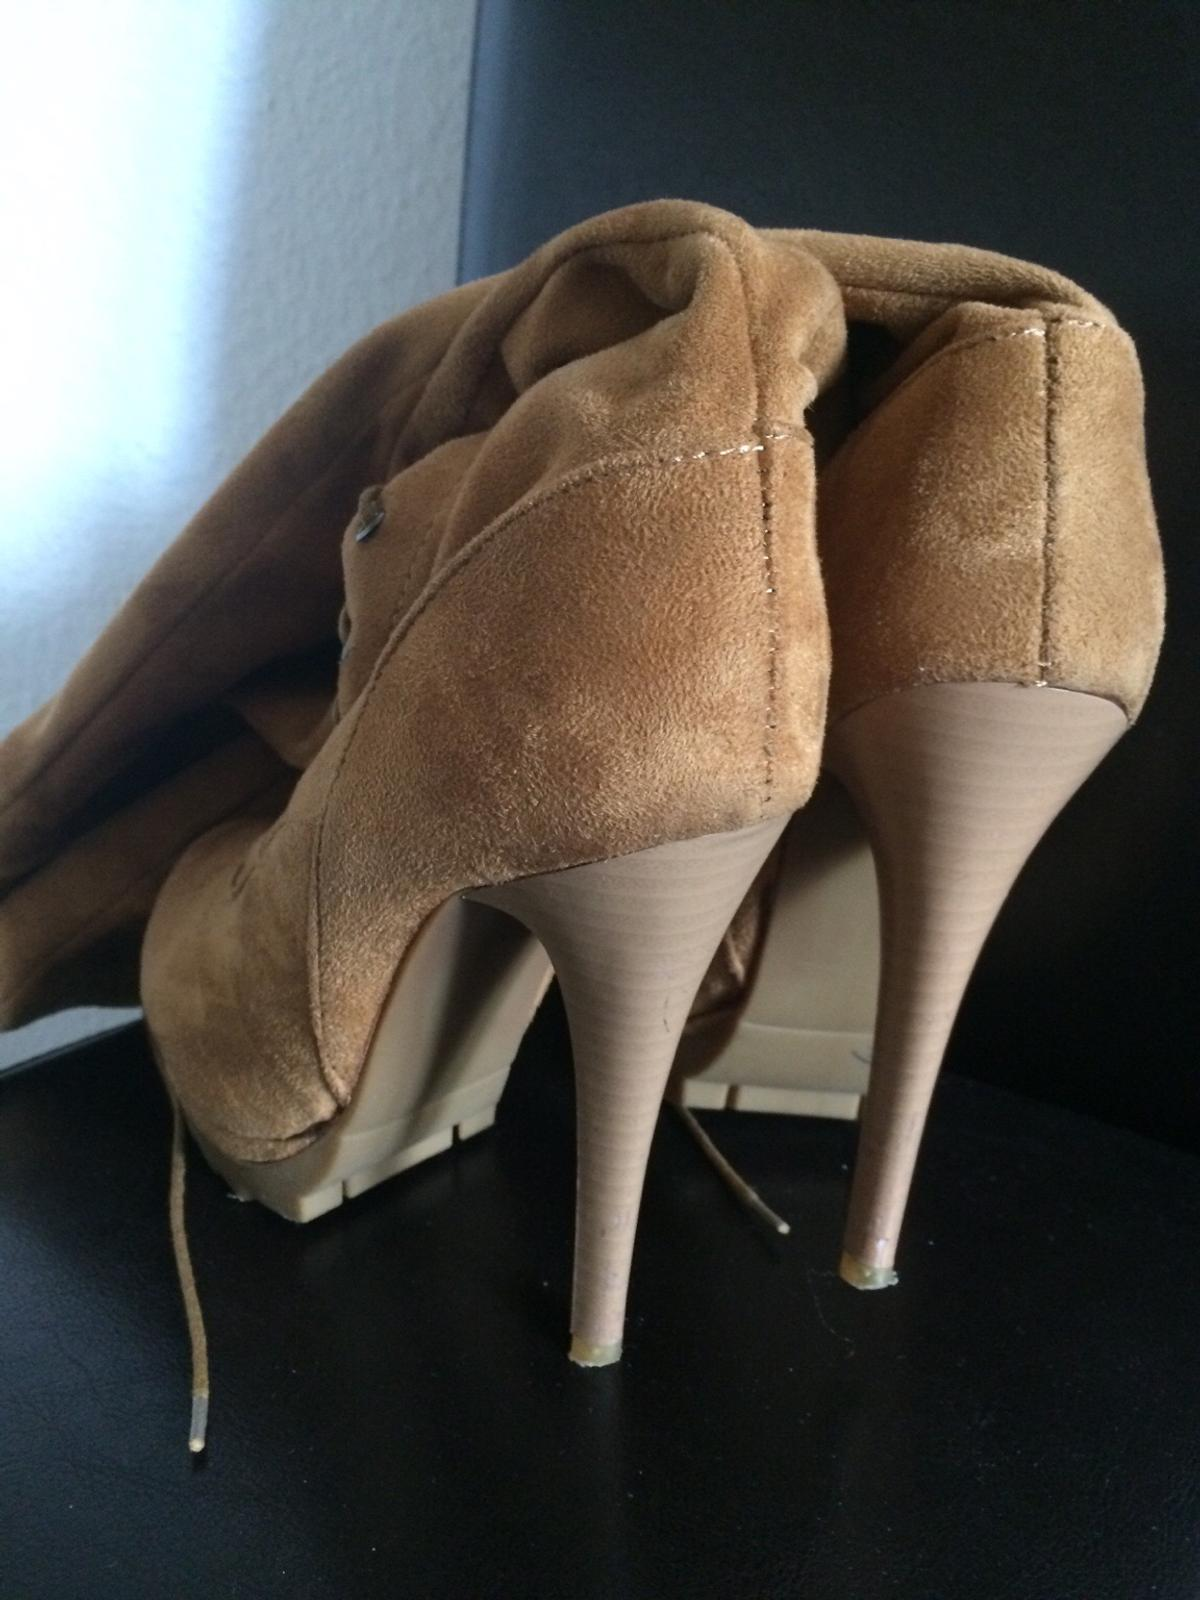 d06a194ecee1 overknee Stiefel high heels Plateau Camel in 37154 Northeim for ...